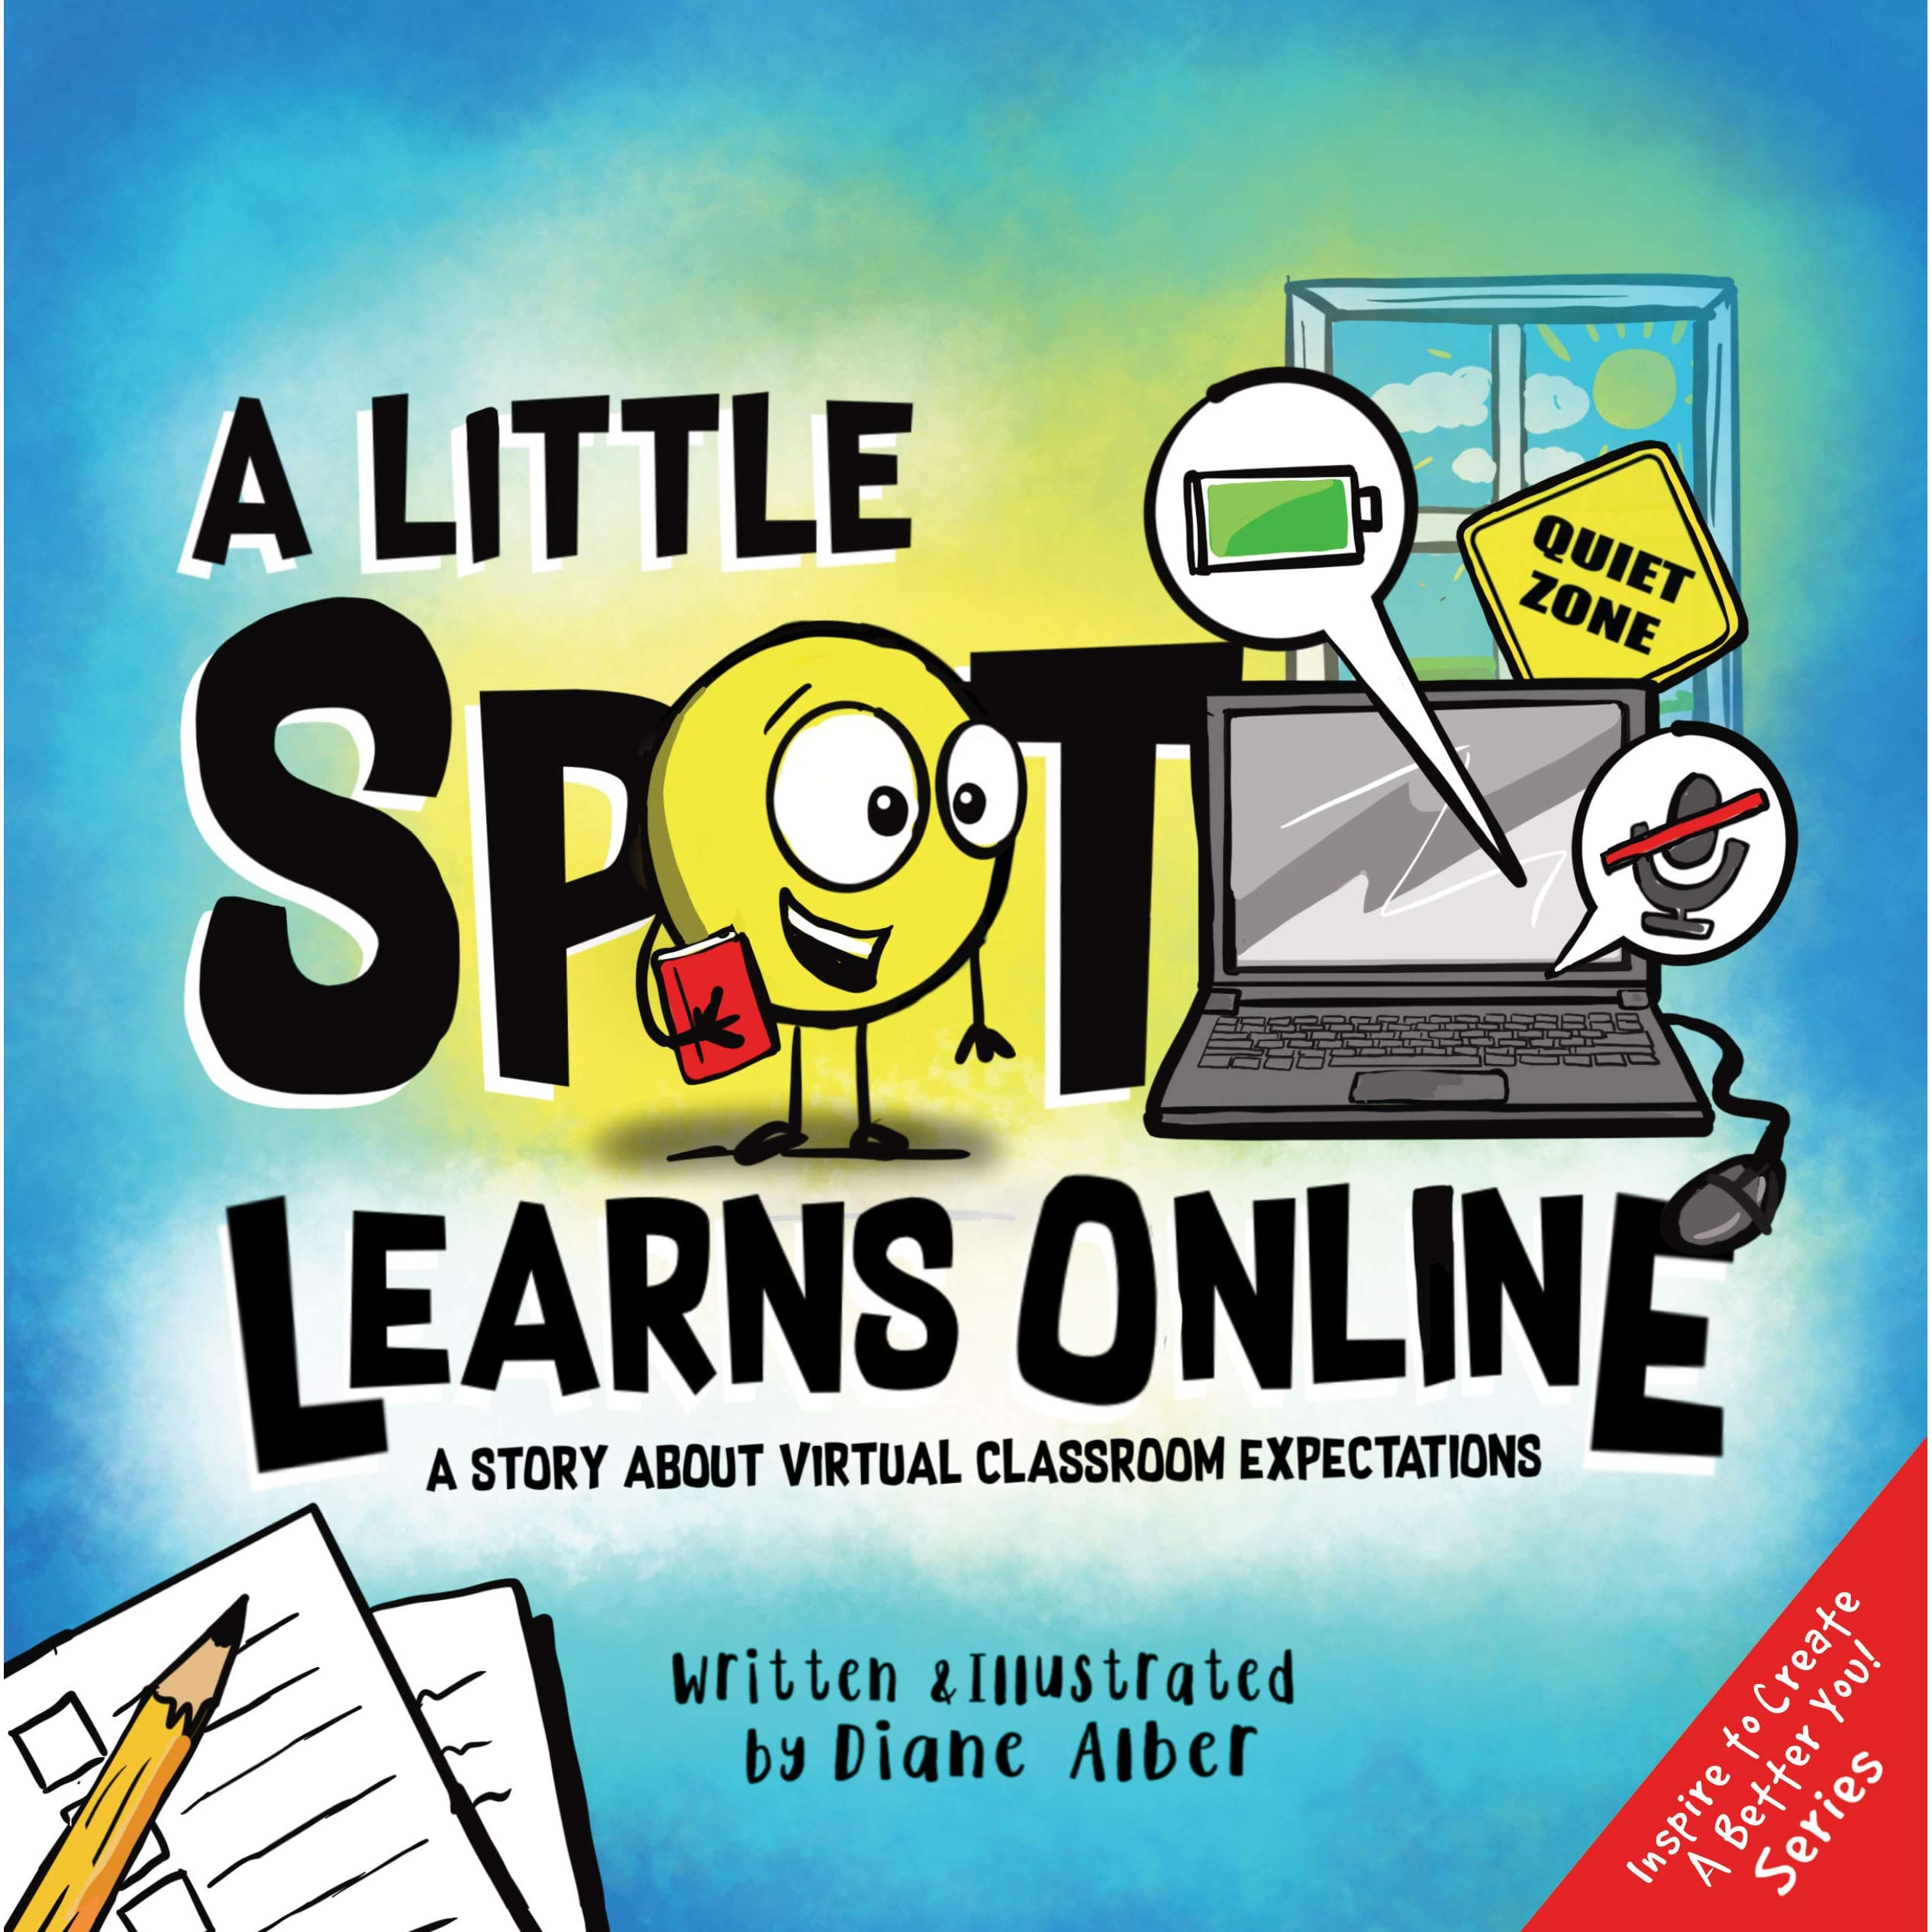 A Little SPOT Learns Online: A Story About Virtual Classroom Expectations  by Diane Alber